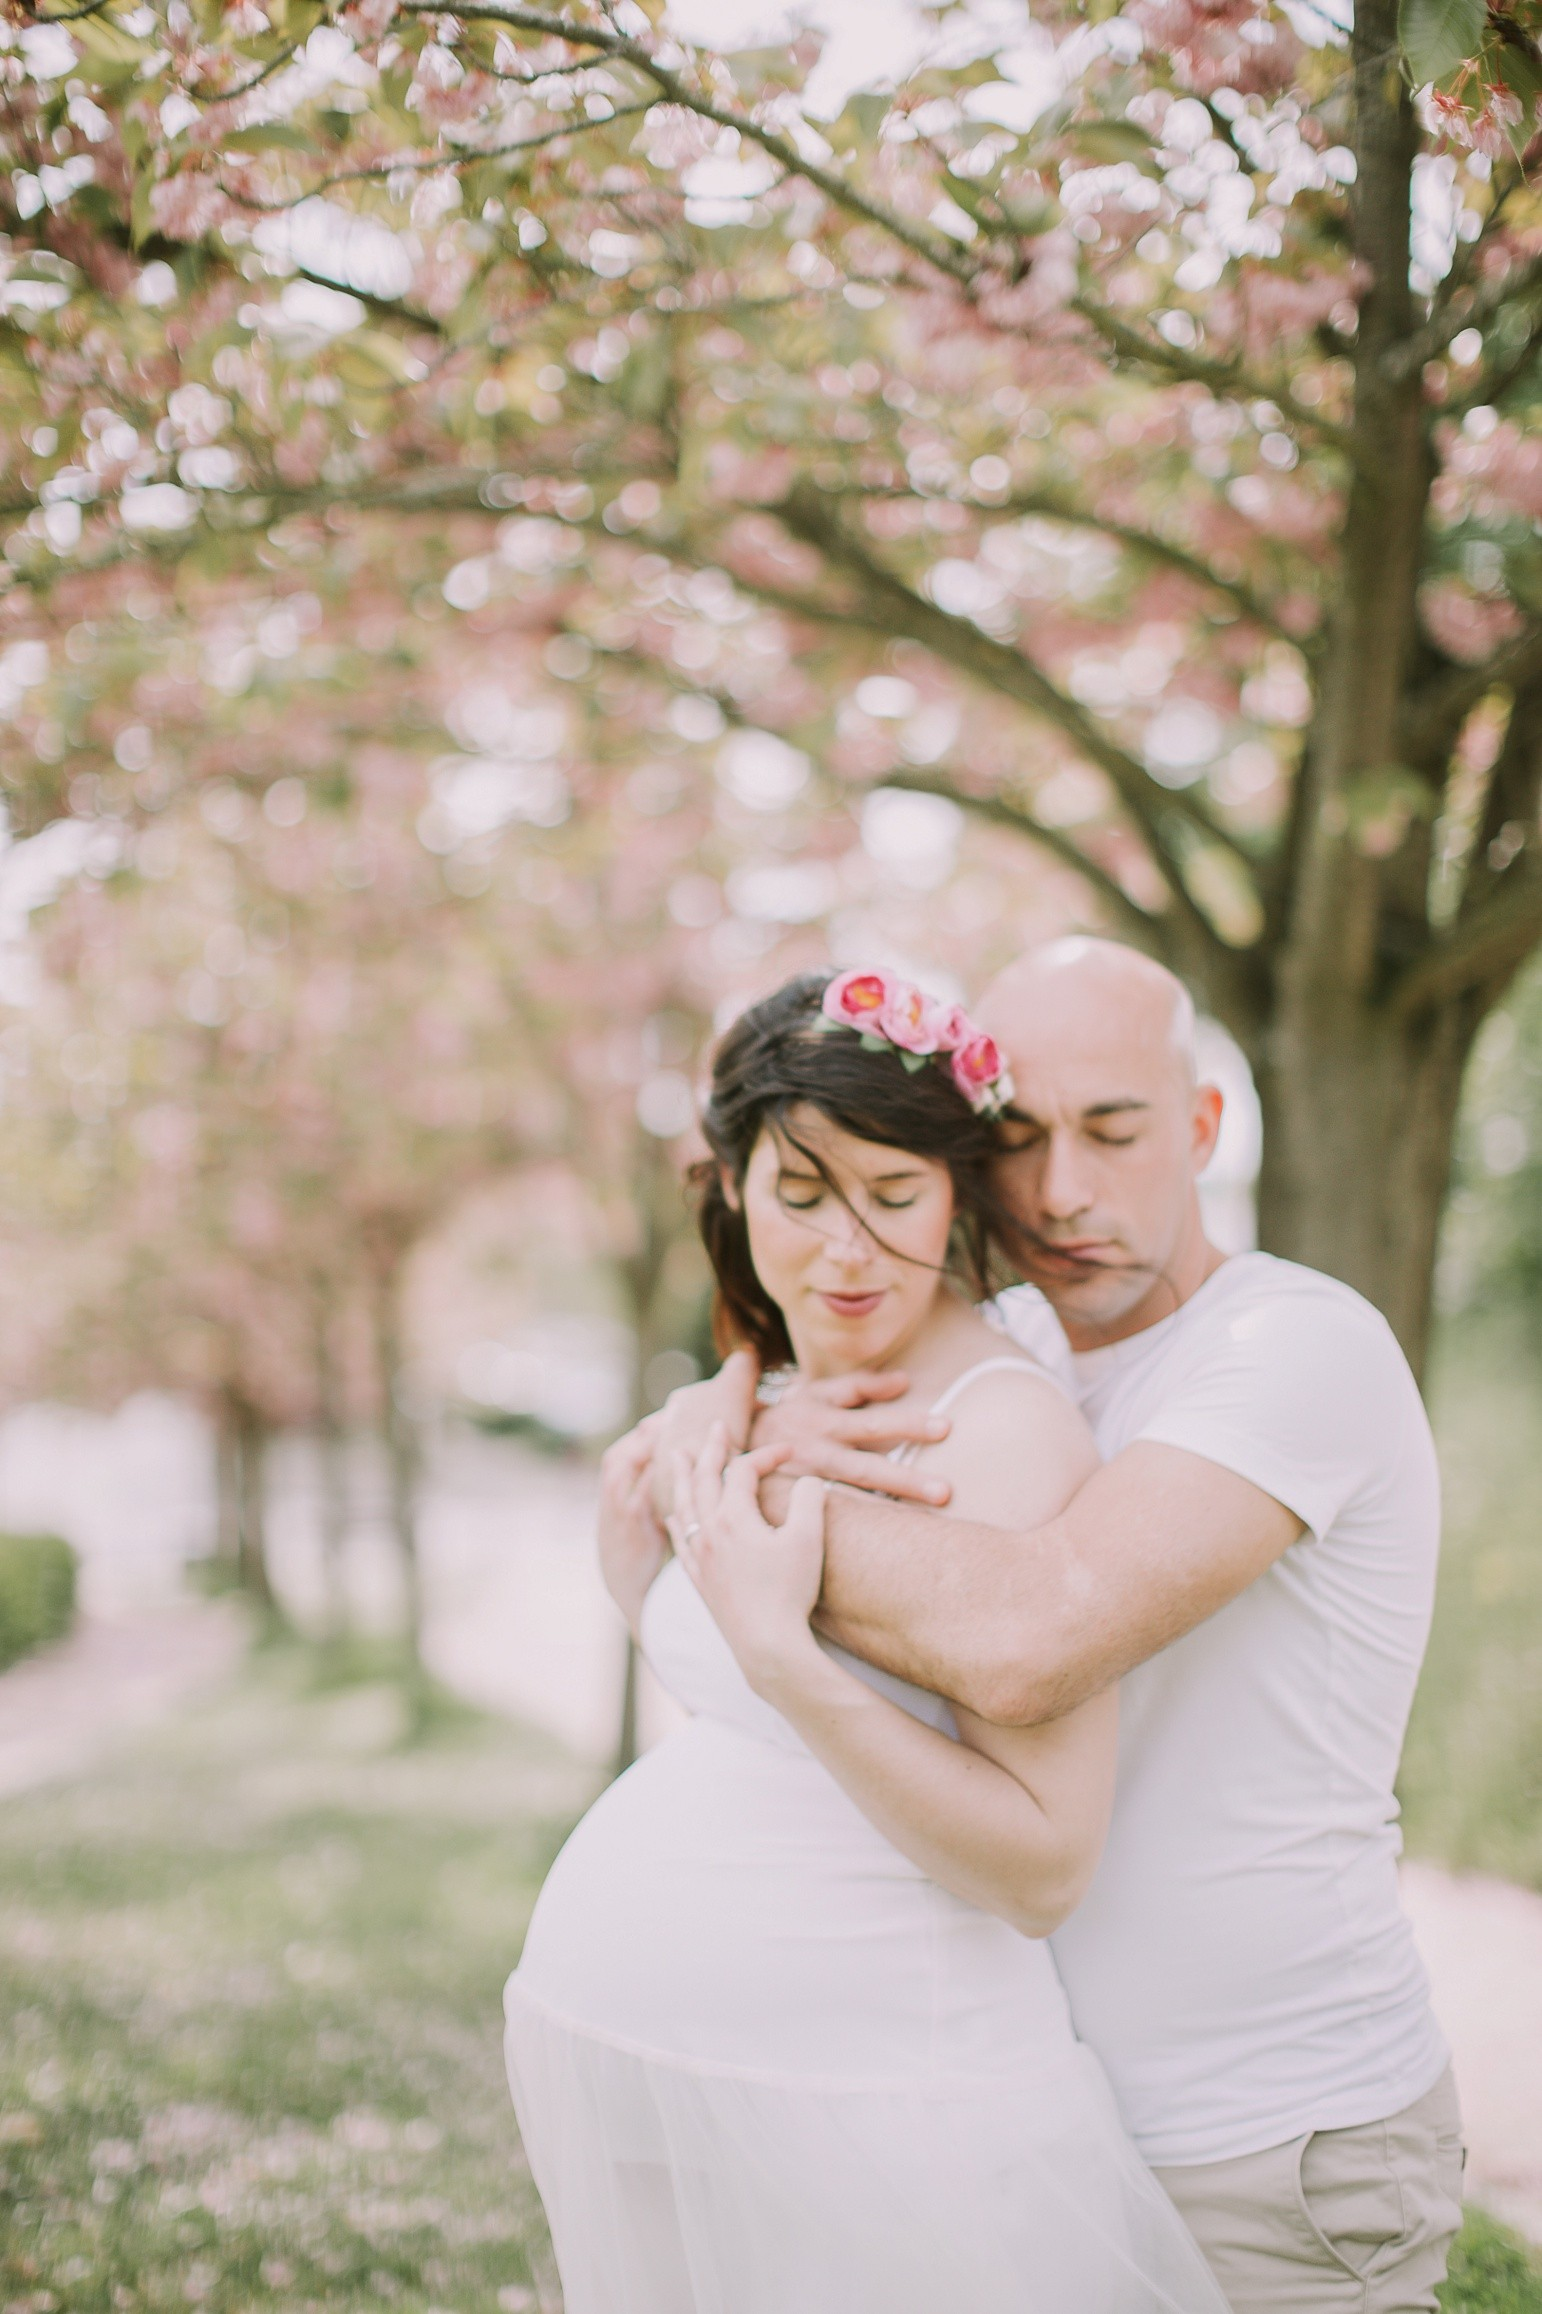 kateryna-photos-grossesse-photographe-sarthe-normandie-nantes-couple-engagement-love-story-le-mans-wedding-cerisiers-exterieur-outdoors_0217.jpg